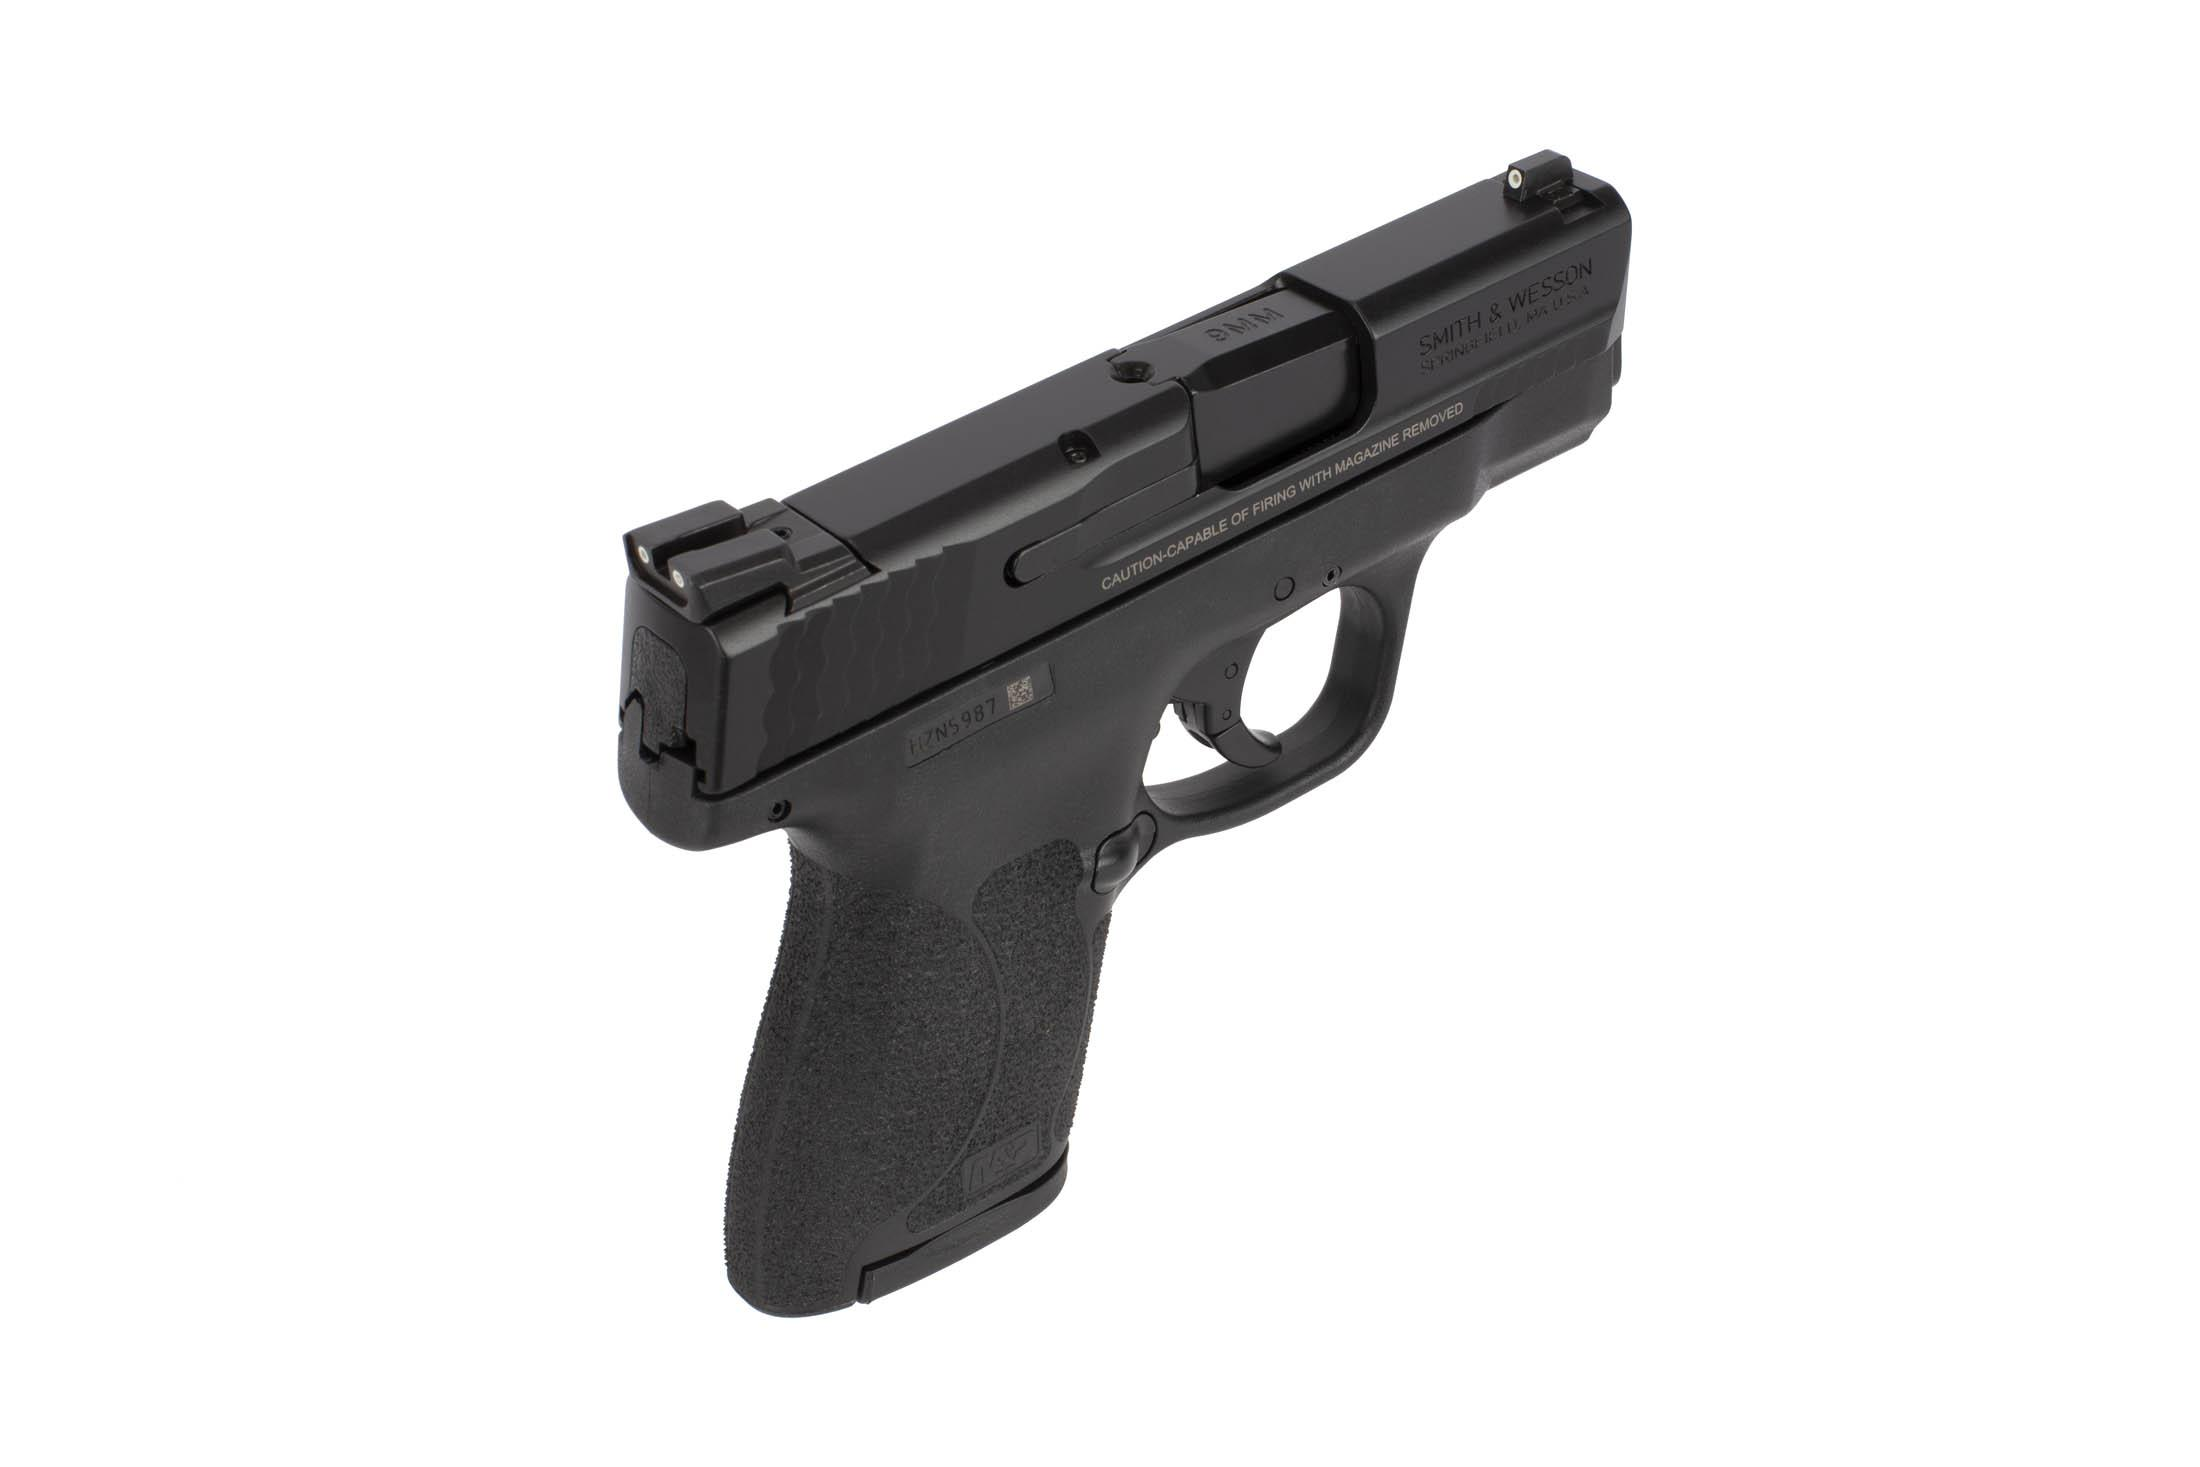 Smith & Wesson M&P Shield 2 0 9mm Sub Compact 8rnd Handgun - Night Sights -  3 1